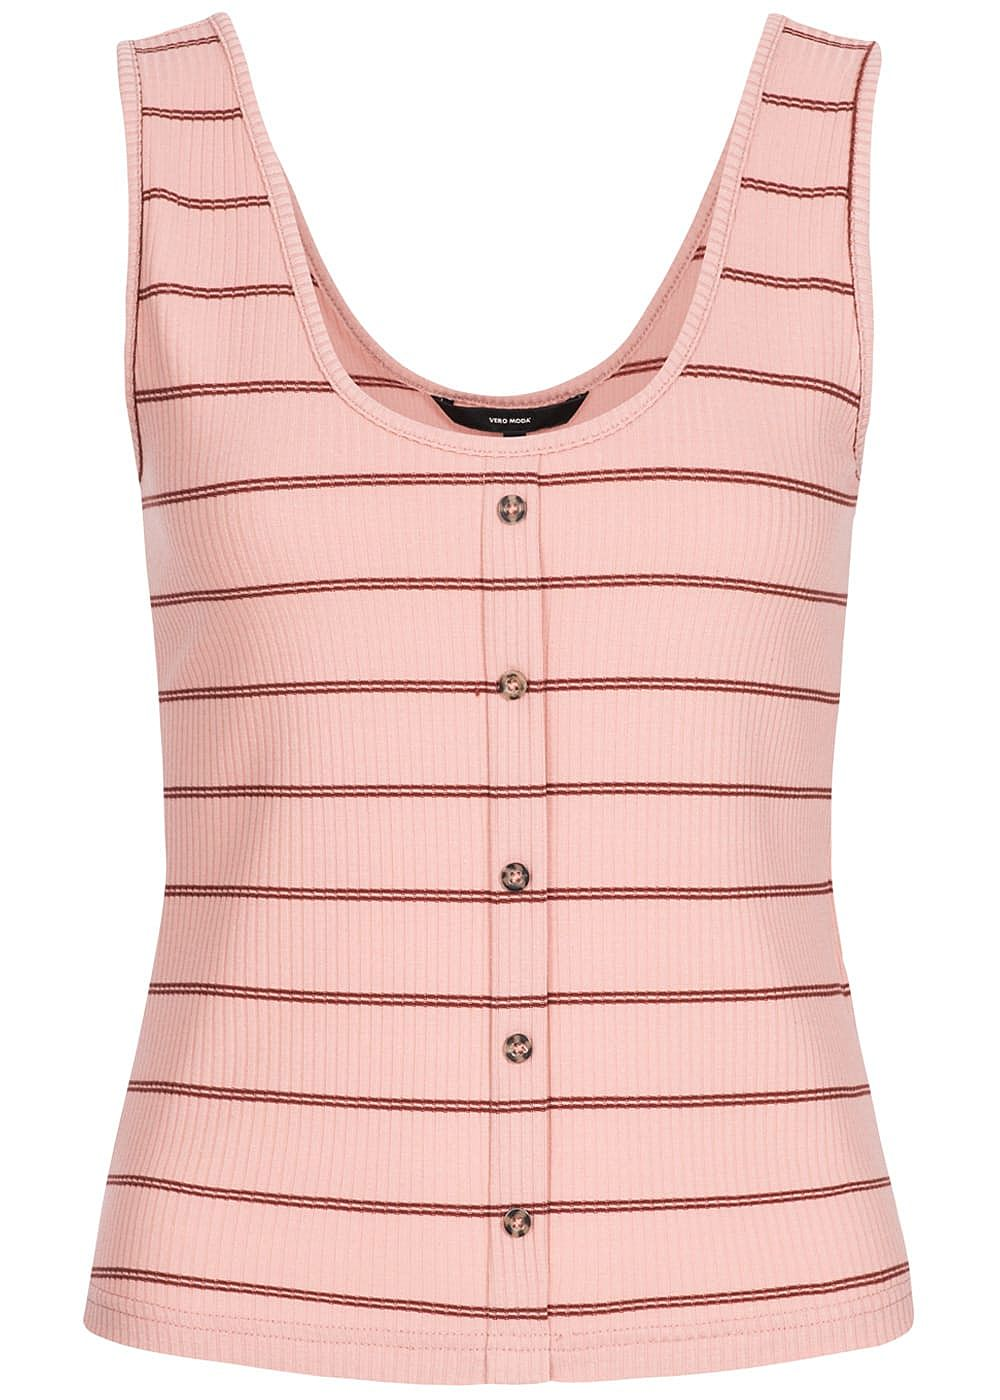 Vero Moda Damen Rib Striped Tank Top Buttons Front misty rosa - Art.-Nr.: 19051724